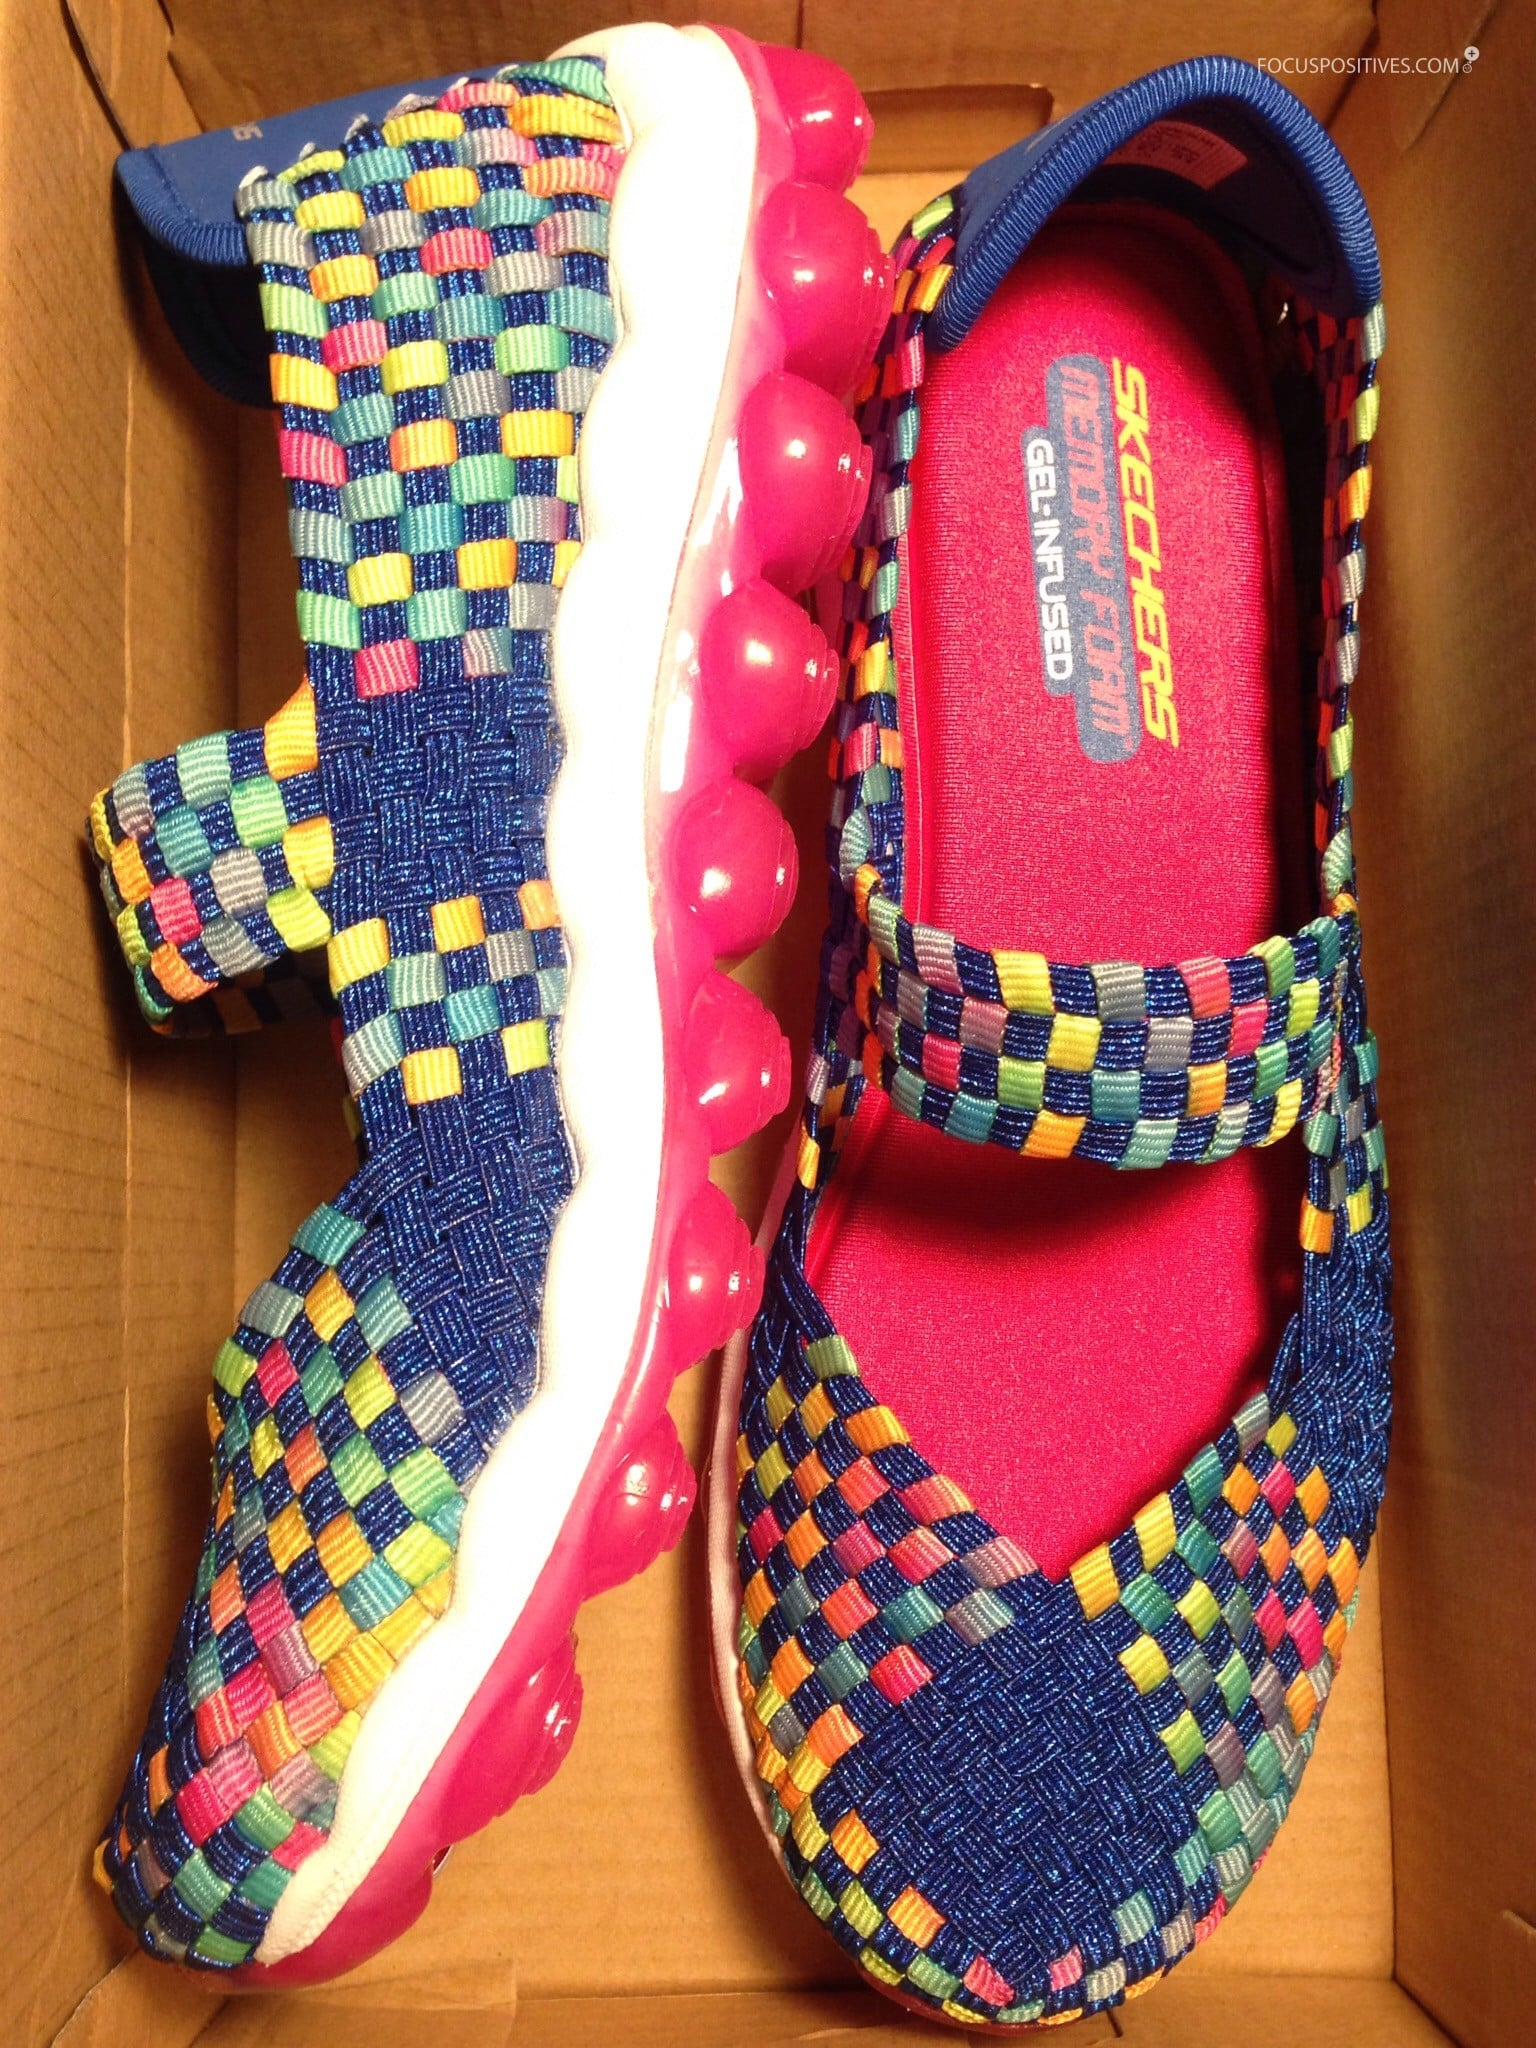 7824309244a Review  Skechers Girl s Glitzy Fitz Blue Multicolor Mary Jane Shoe ...